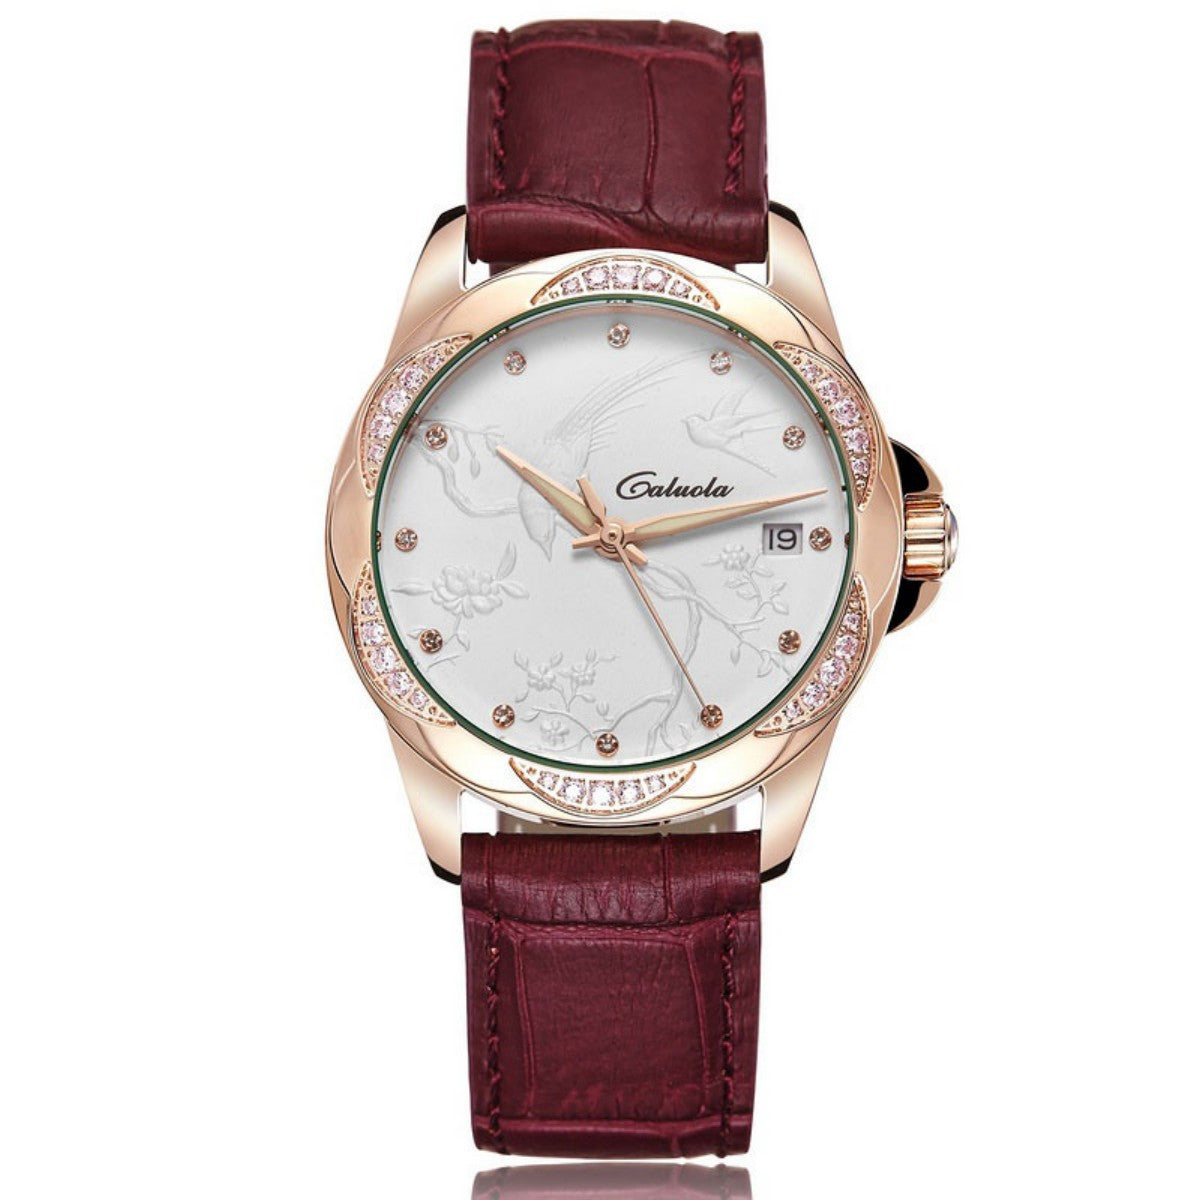 Caluola Automatic Watch Date Fashion Women Relief Elegant Diamond Watch CA1140ML